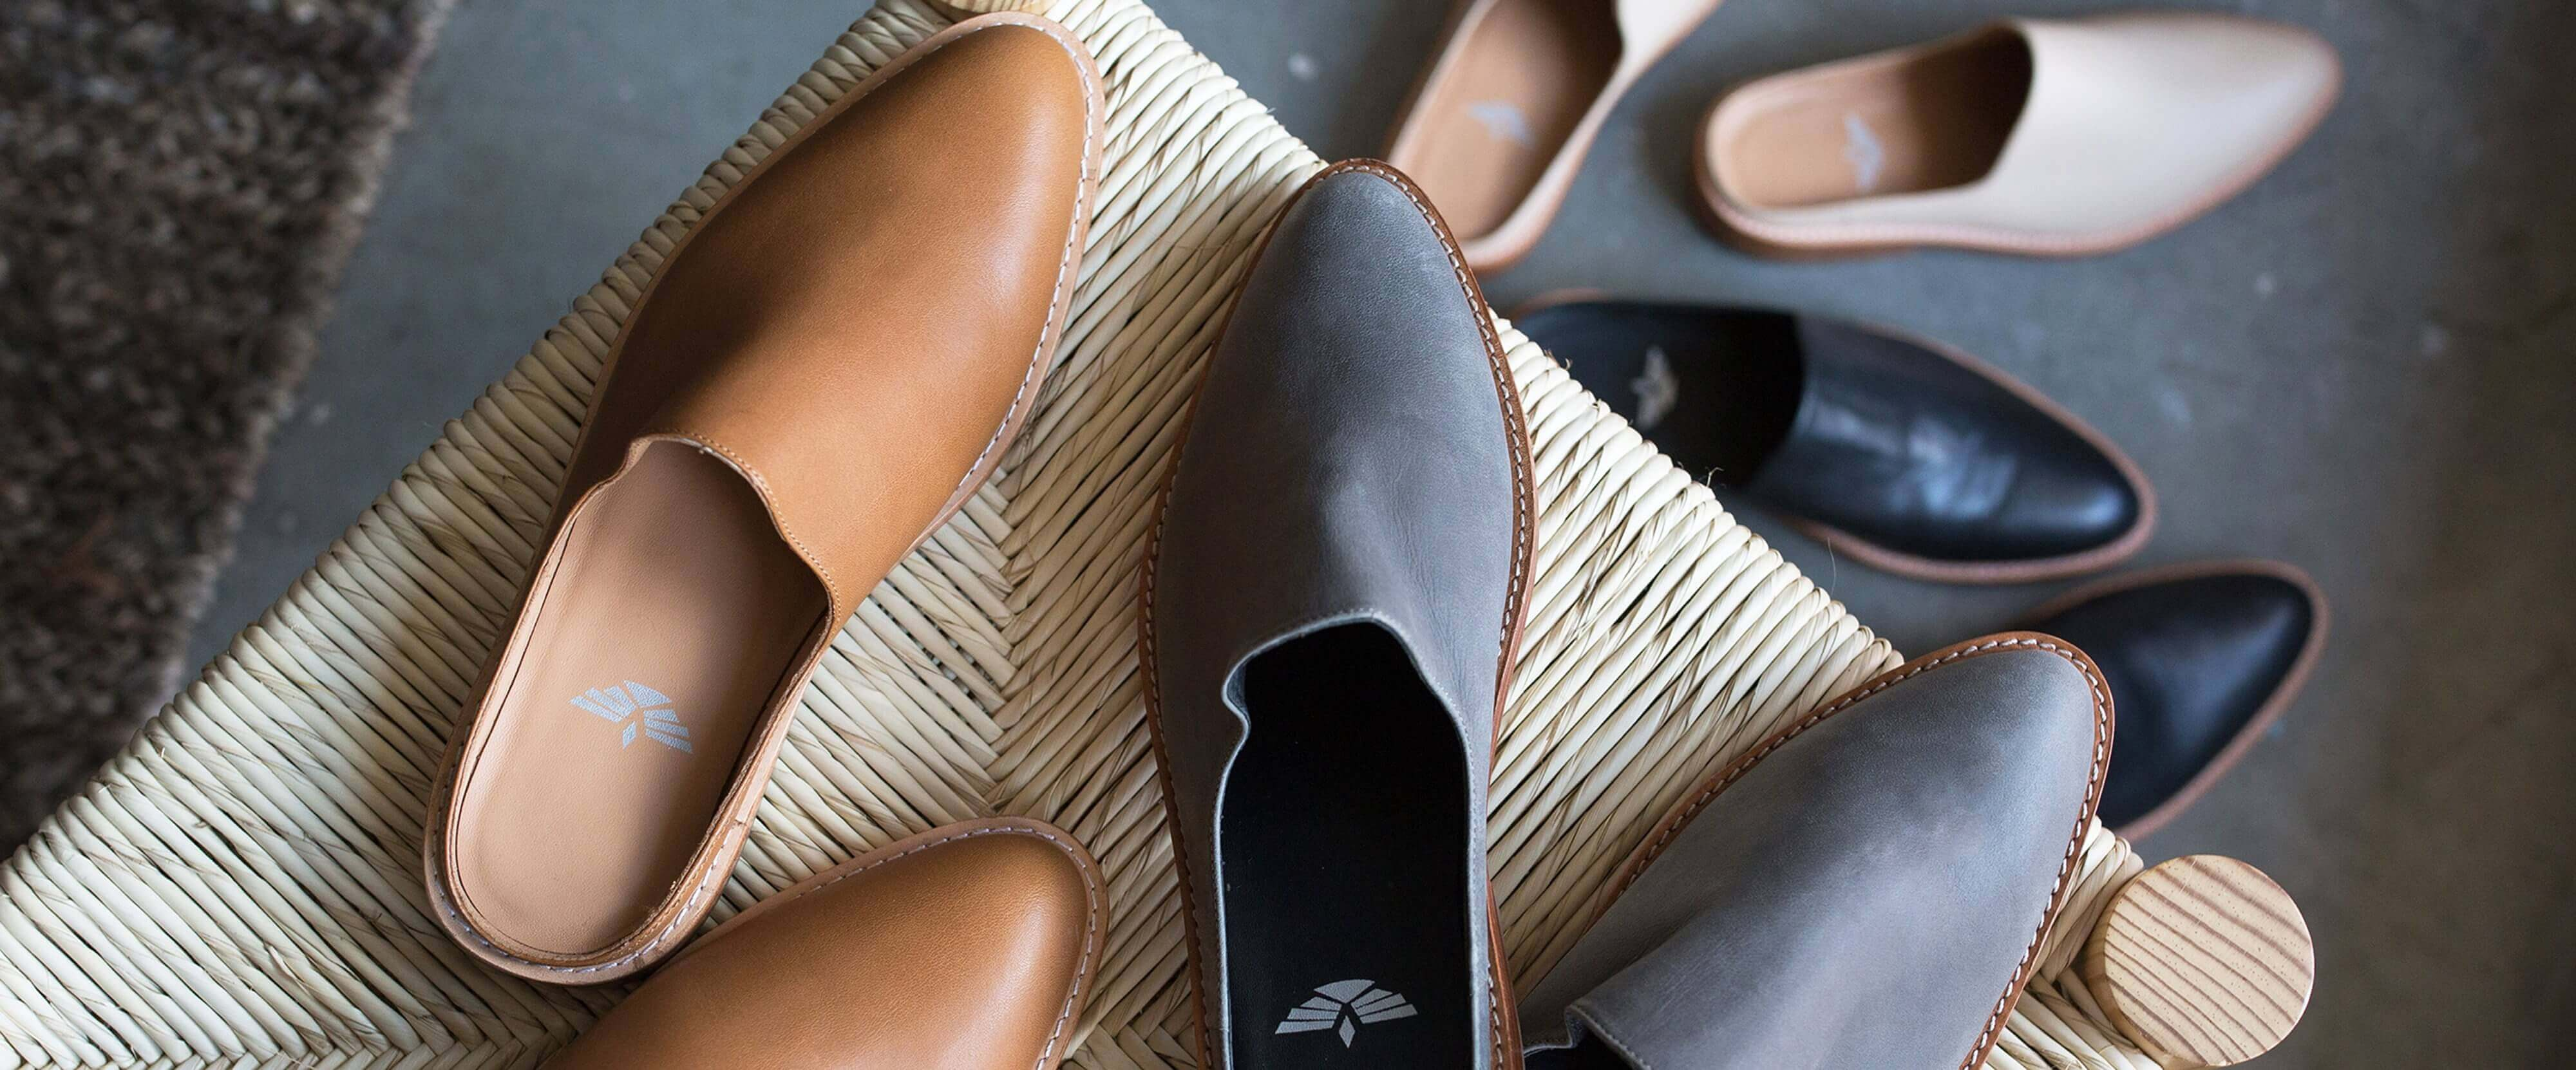 4116fa7d51eb8 Leather Shoe Care & Cleaning Guide | Fortress of Inca